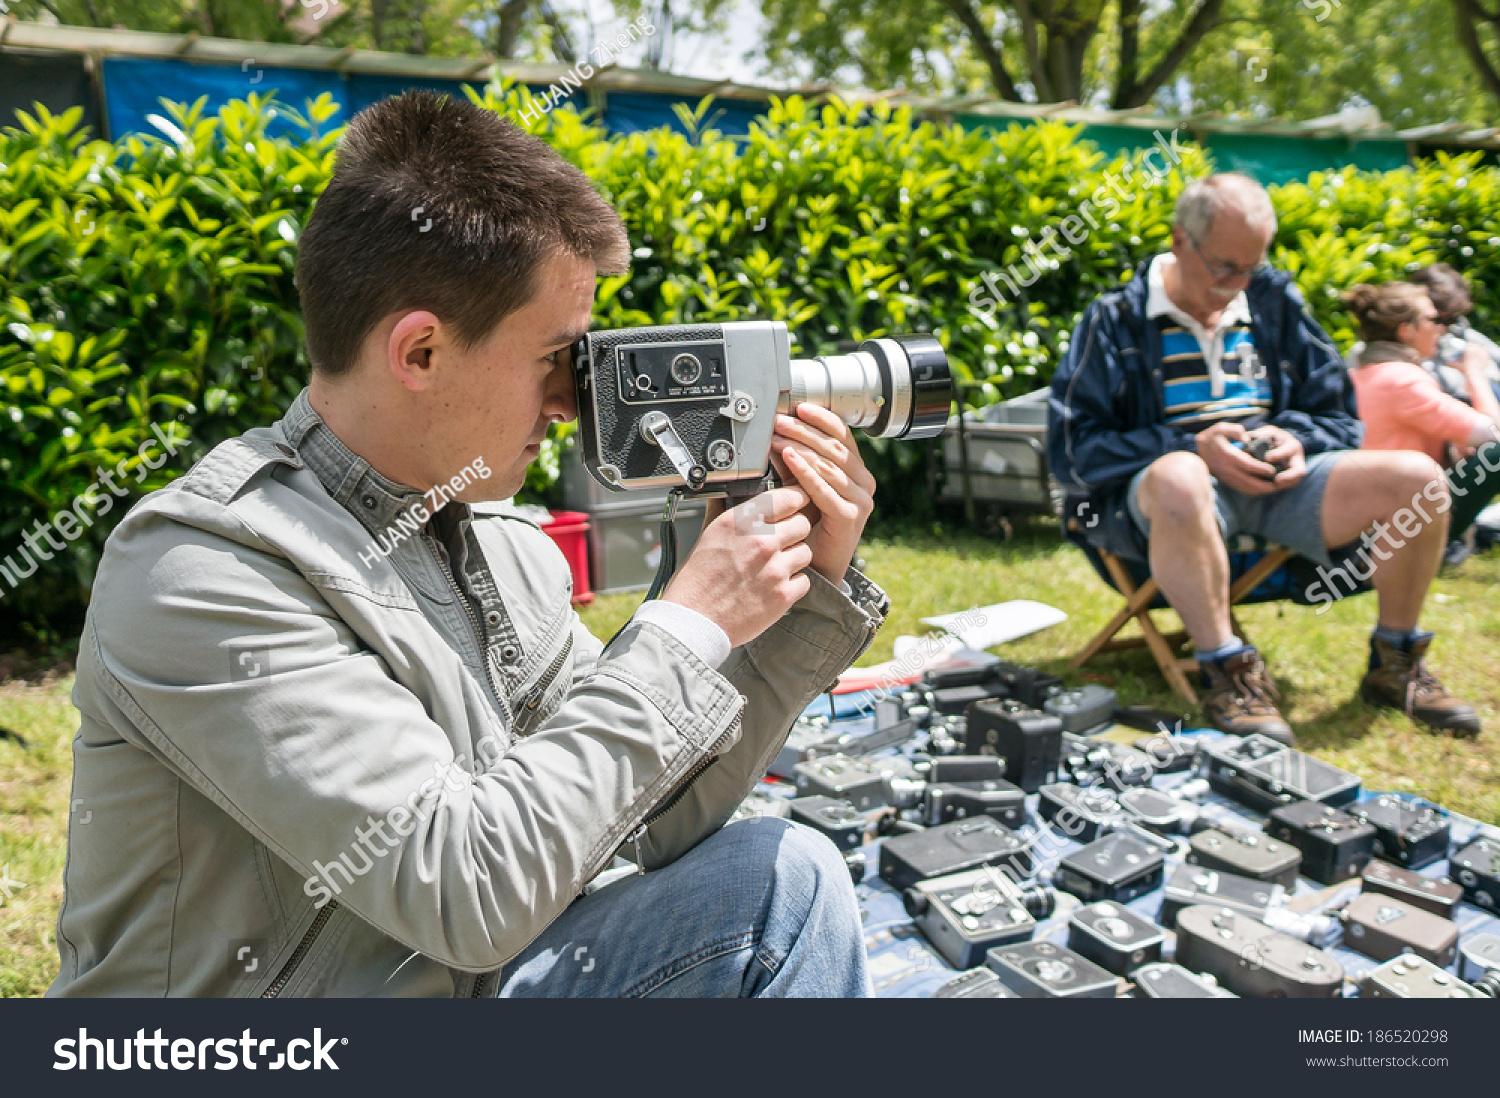 Amateur digital photo sharing are not